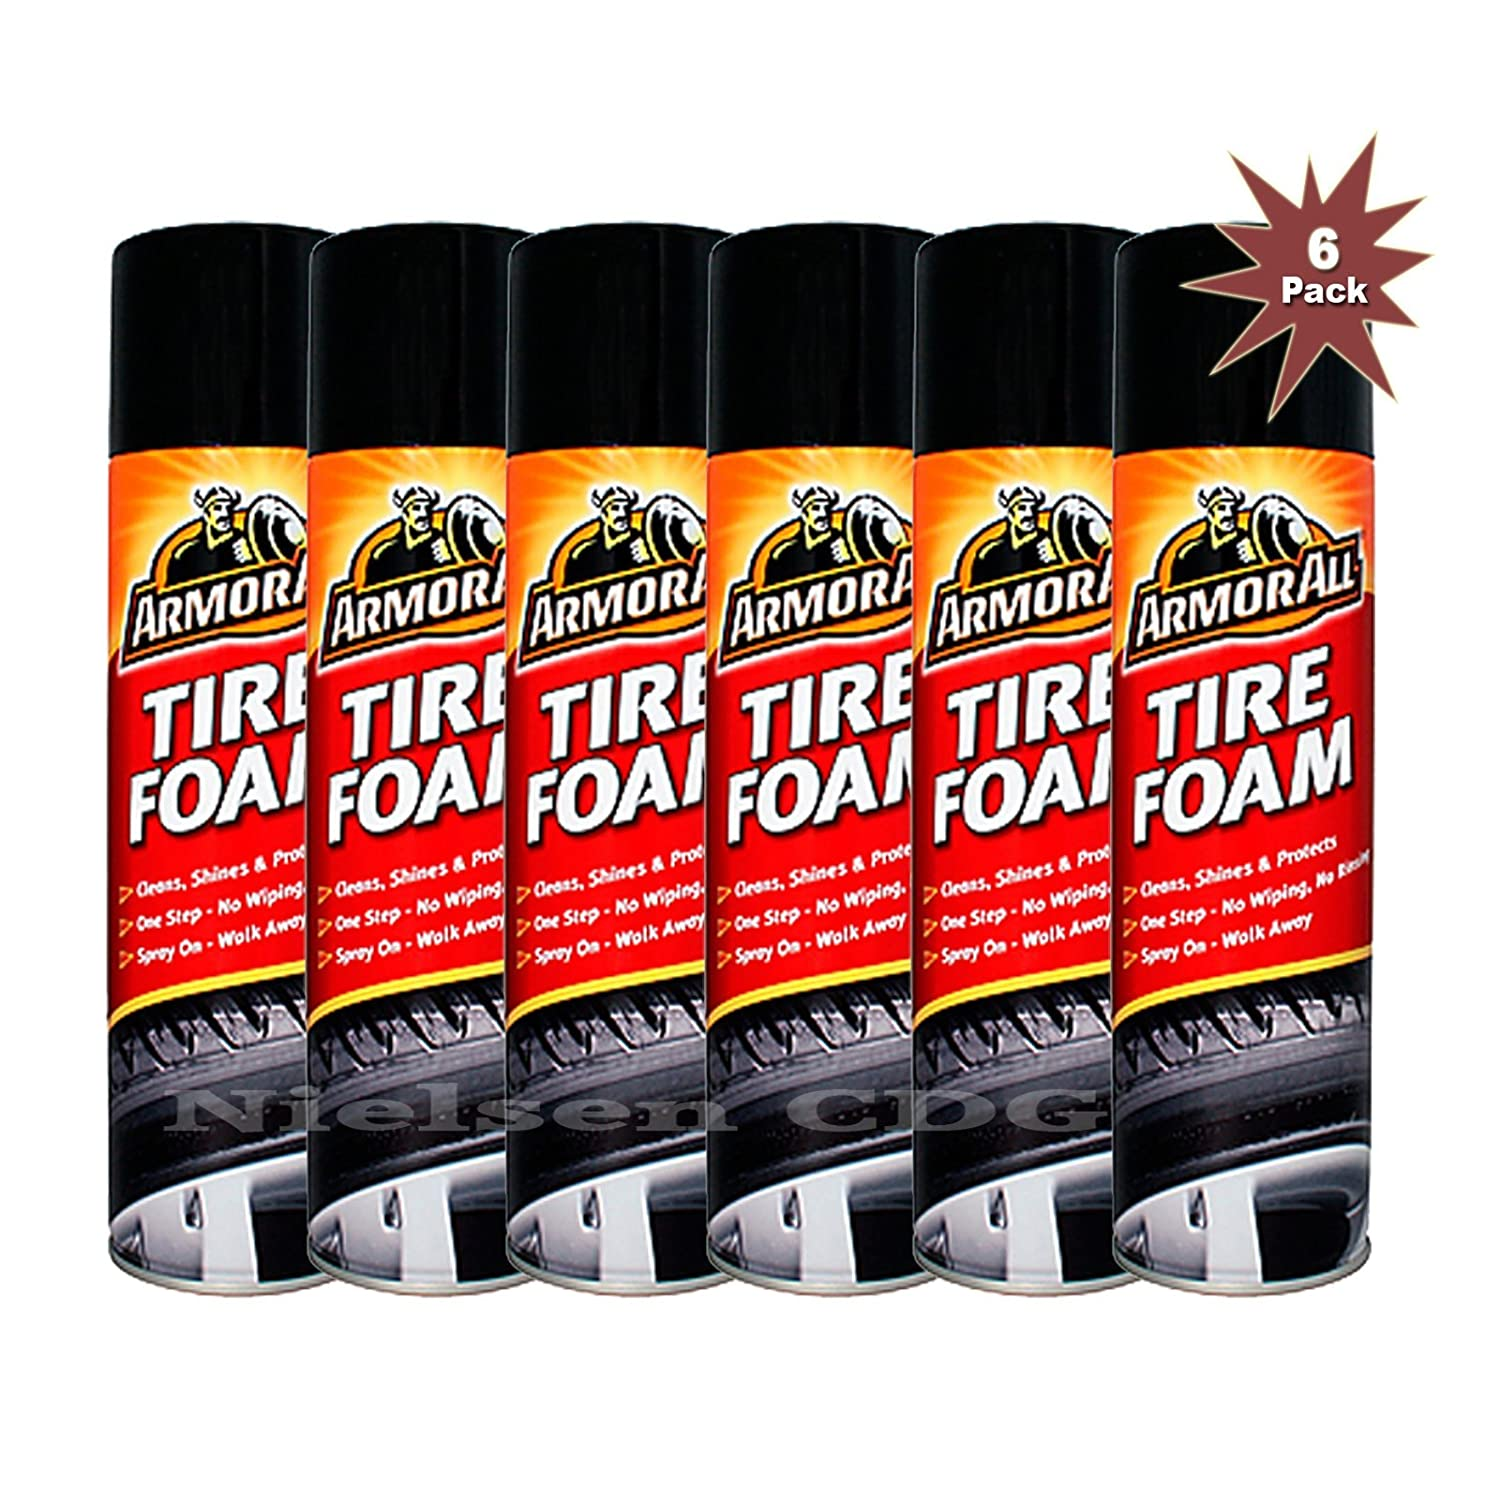 Armor All® Tire Foam Cleaner 6x500ml = 6pk Armor All®